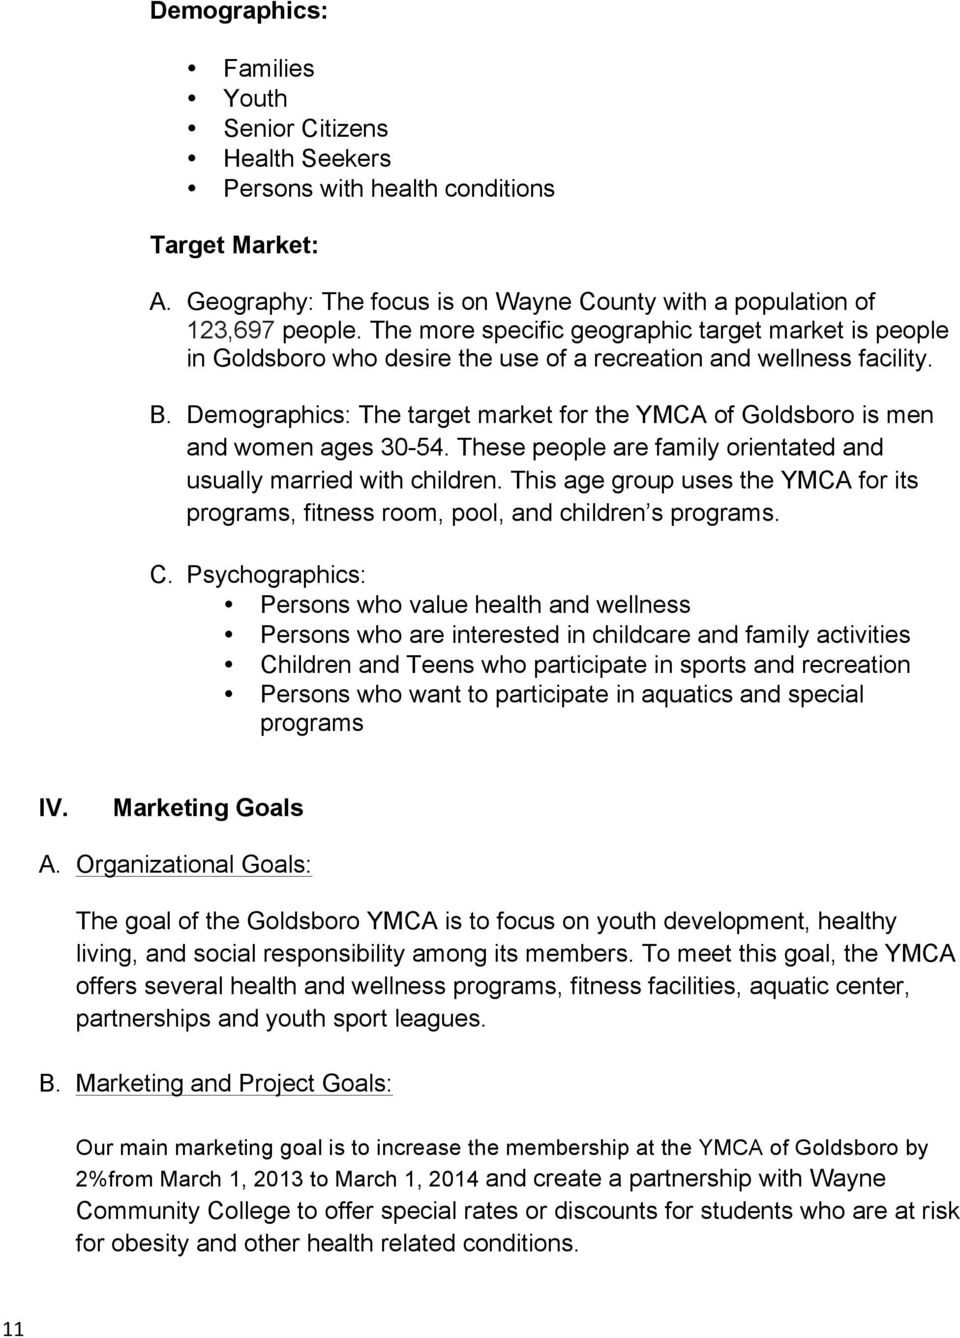 Demographics: The target market for the YMCA of Goldsboro is men and women ages 30-54. These people are family orientated and usually married with children.